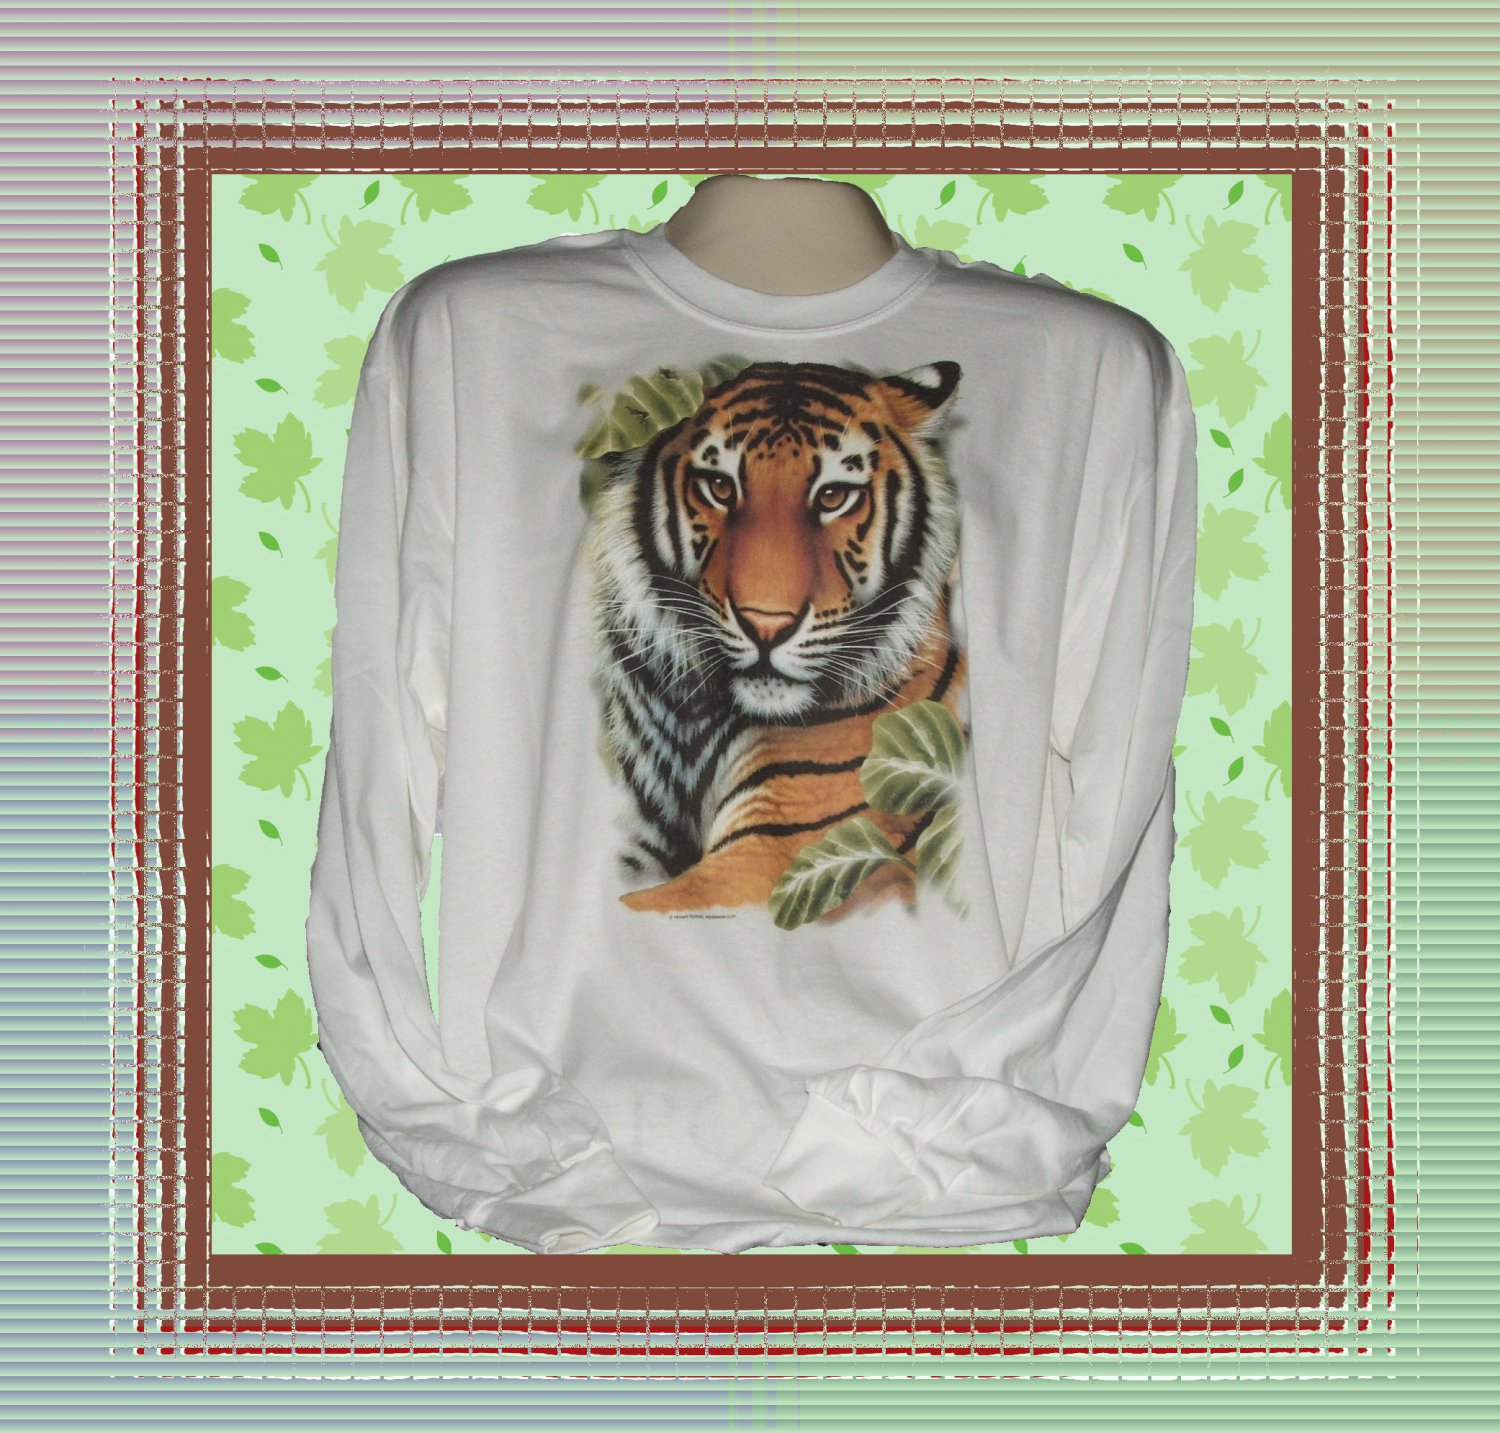 Wild Jungle Tiger Long Sleeve Cotton T-shirt XL